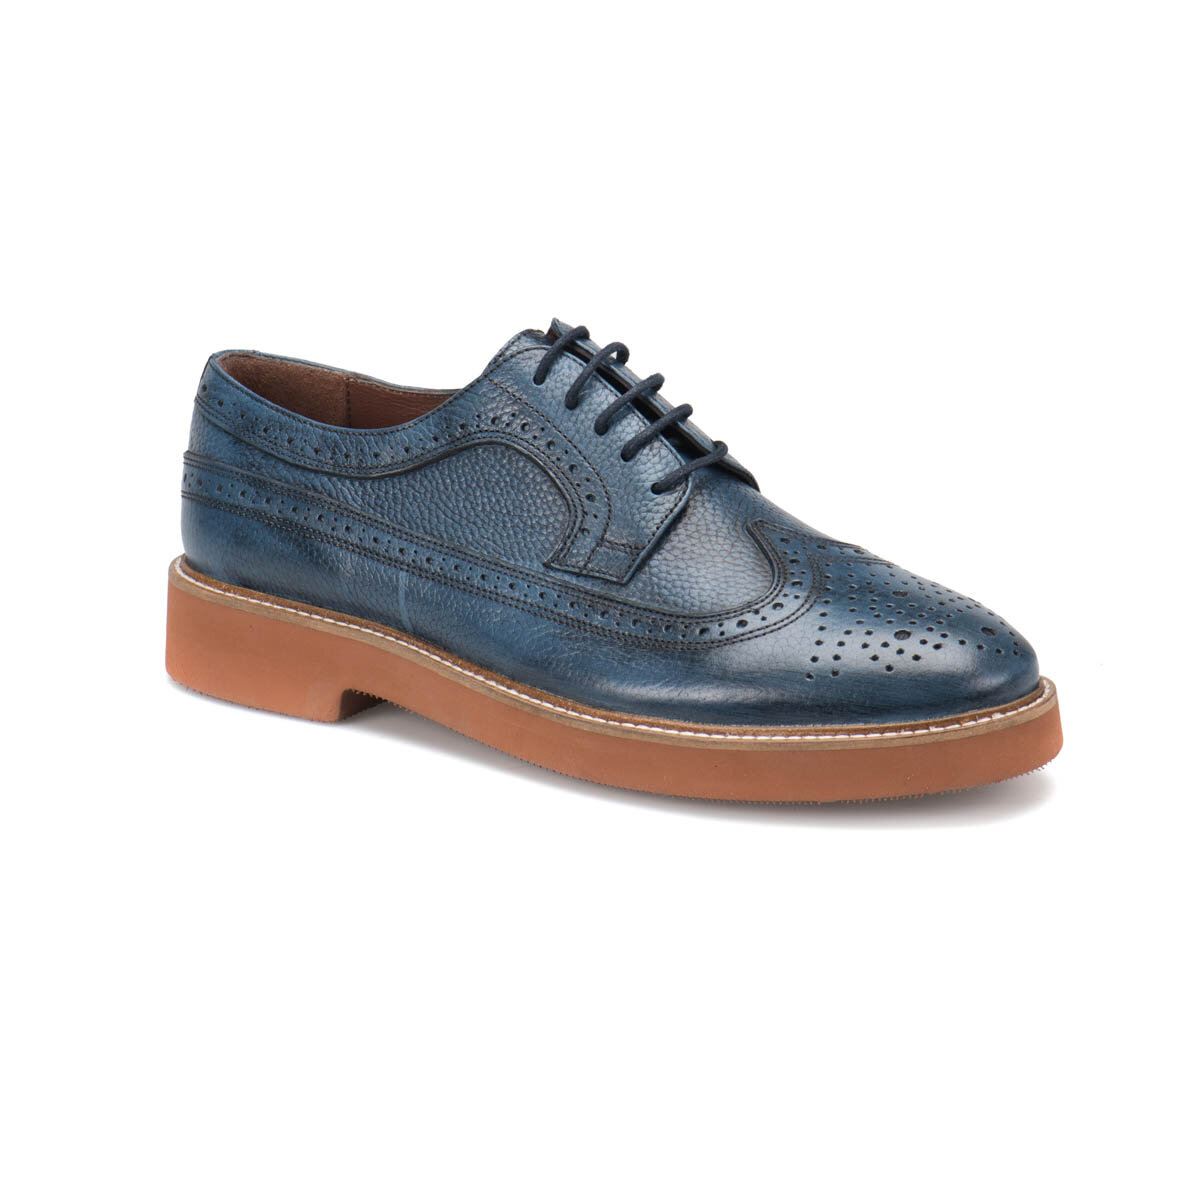 FLO 70105-1 M 1506 Navy Blue Men 'S Modern Shoes Cordovan